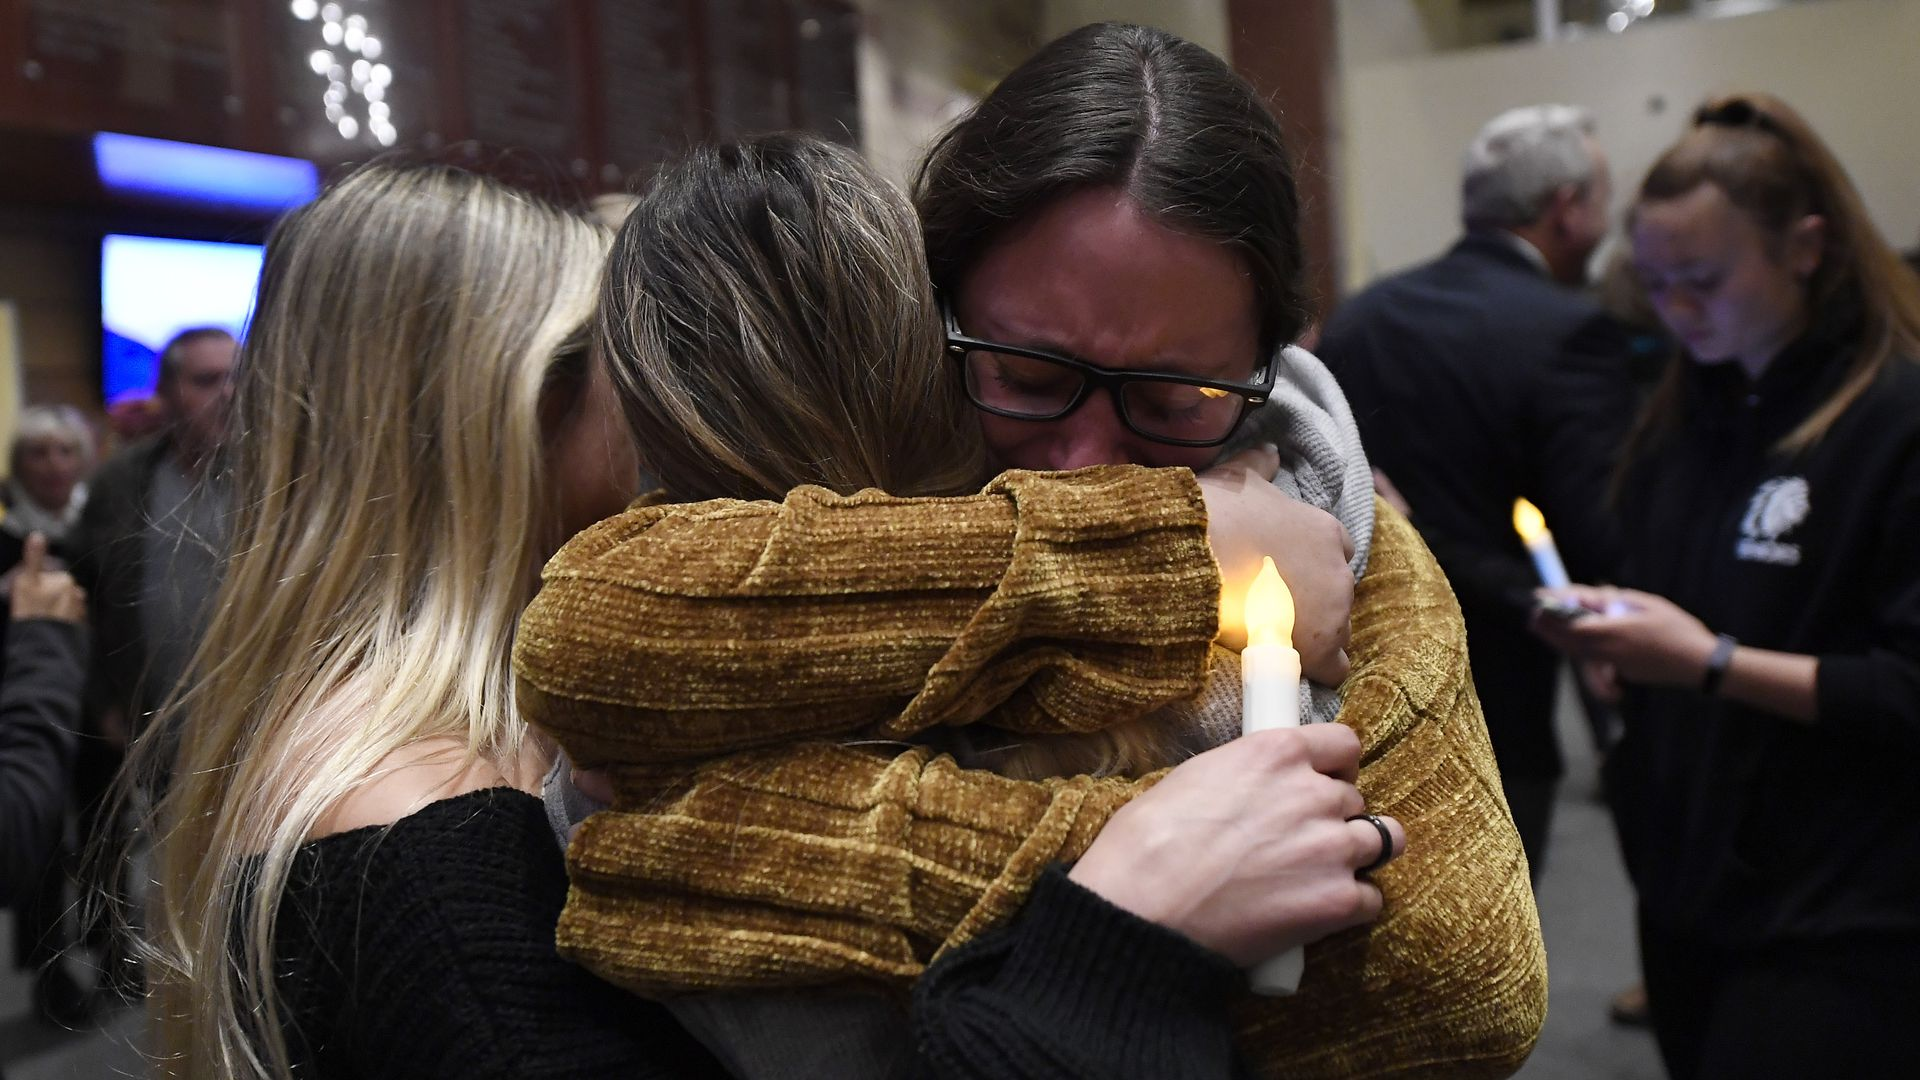 Mourners crying at a candle light vigil after the Thousand Oaks shooting